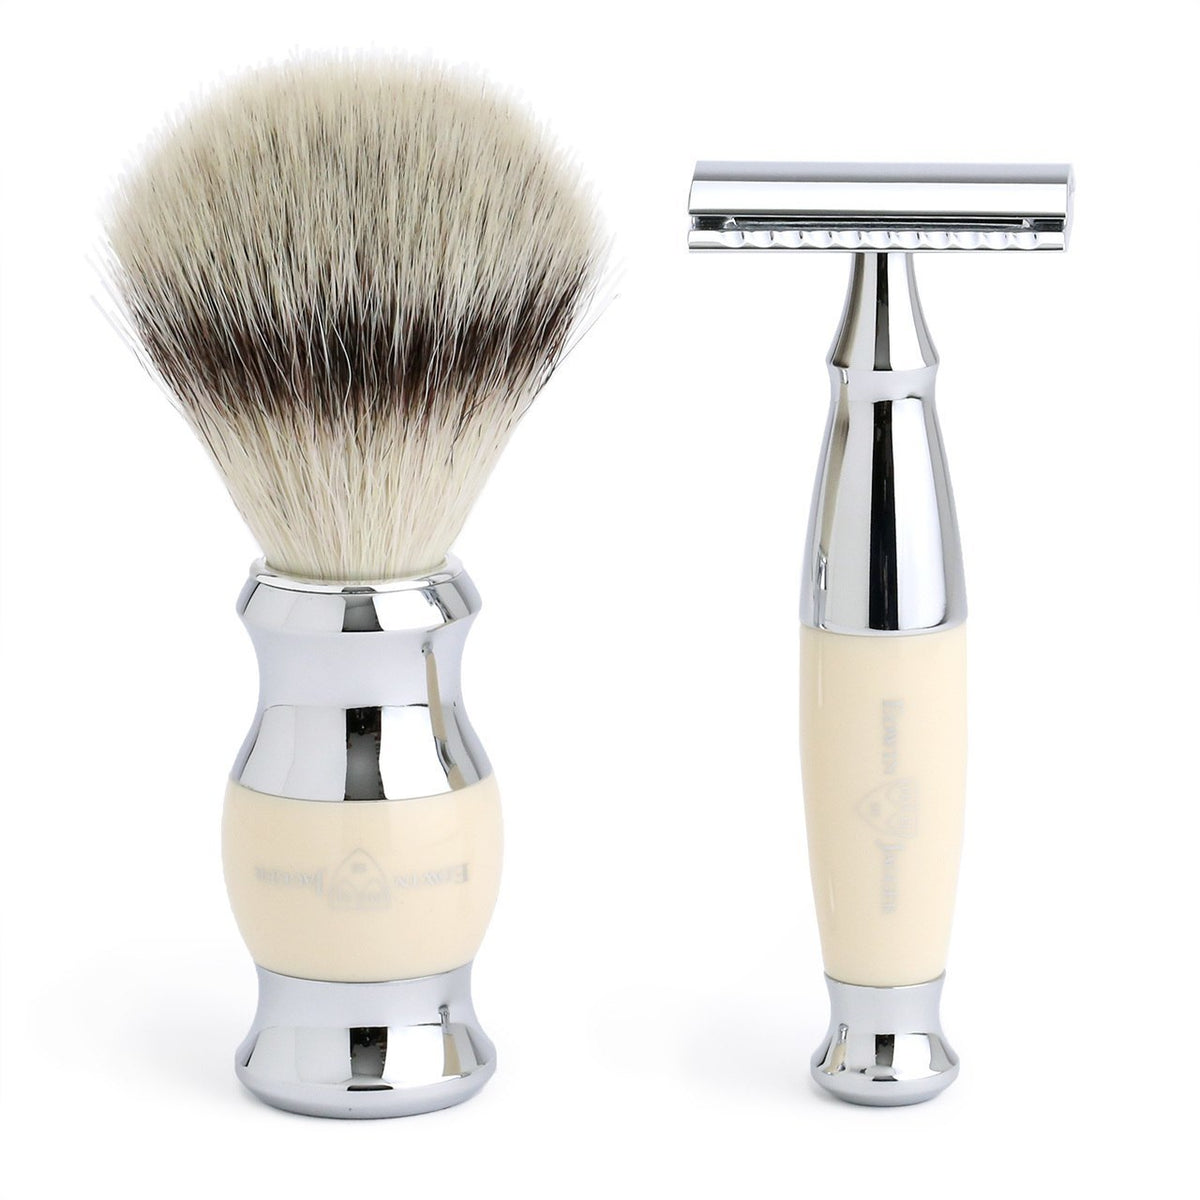 Edwin Jagger 3 Piece Chrome Plated Shaving Set with Synthetic Silver Tip Brush - Imitation Ivory